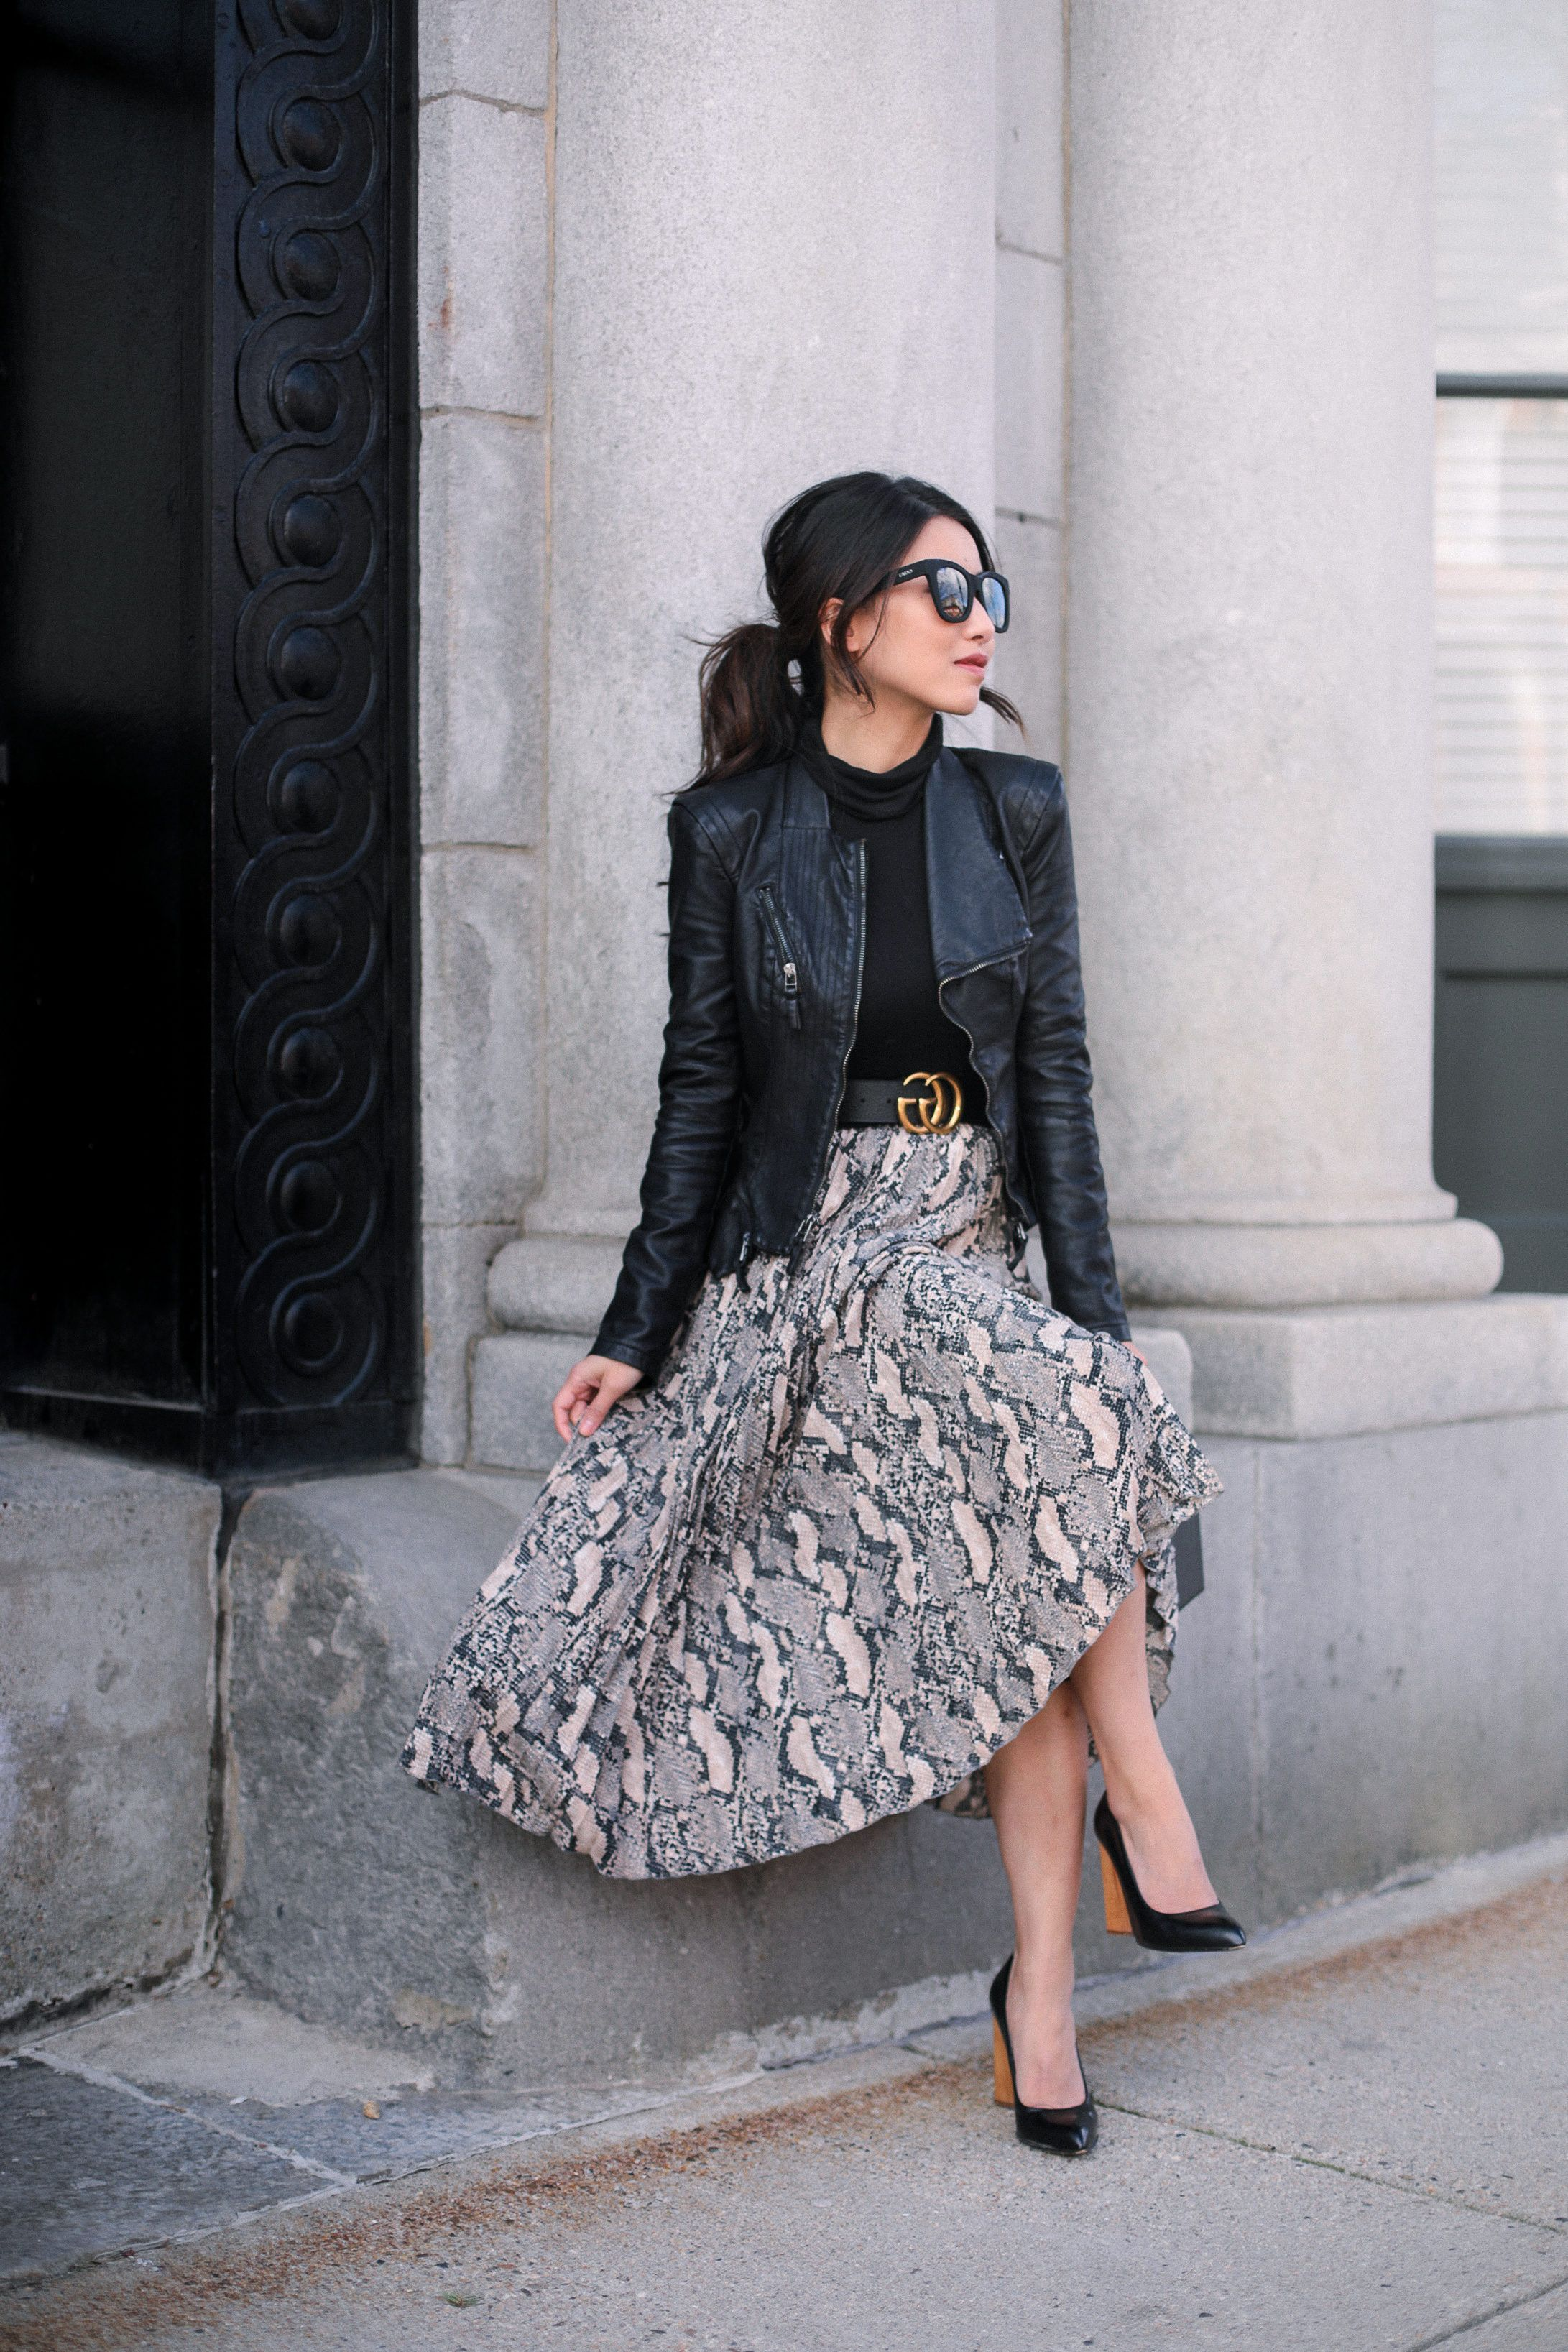 Petite leather jacket + pleated skirt